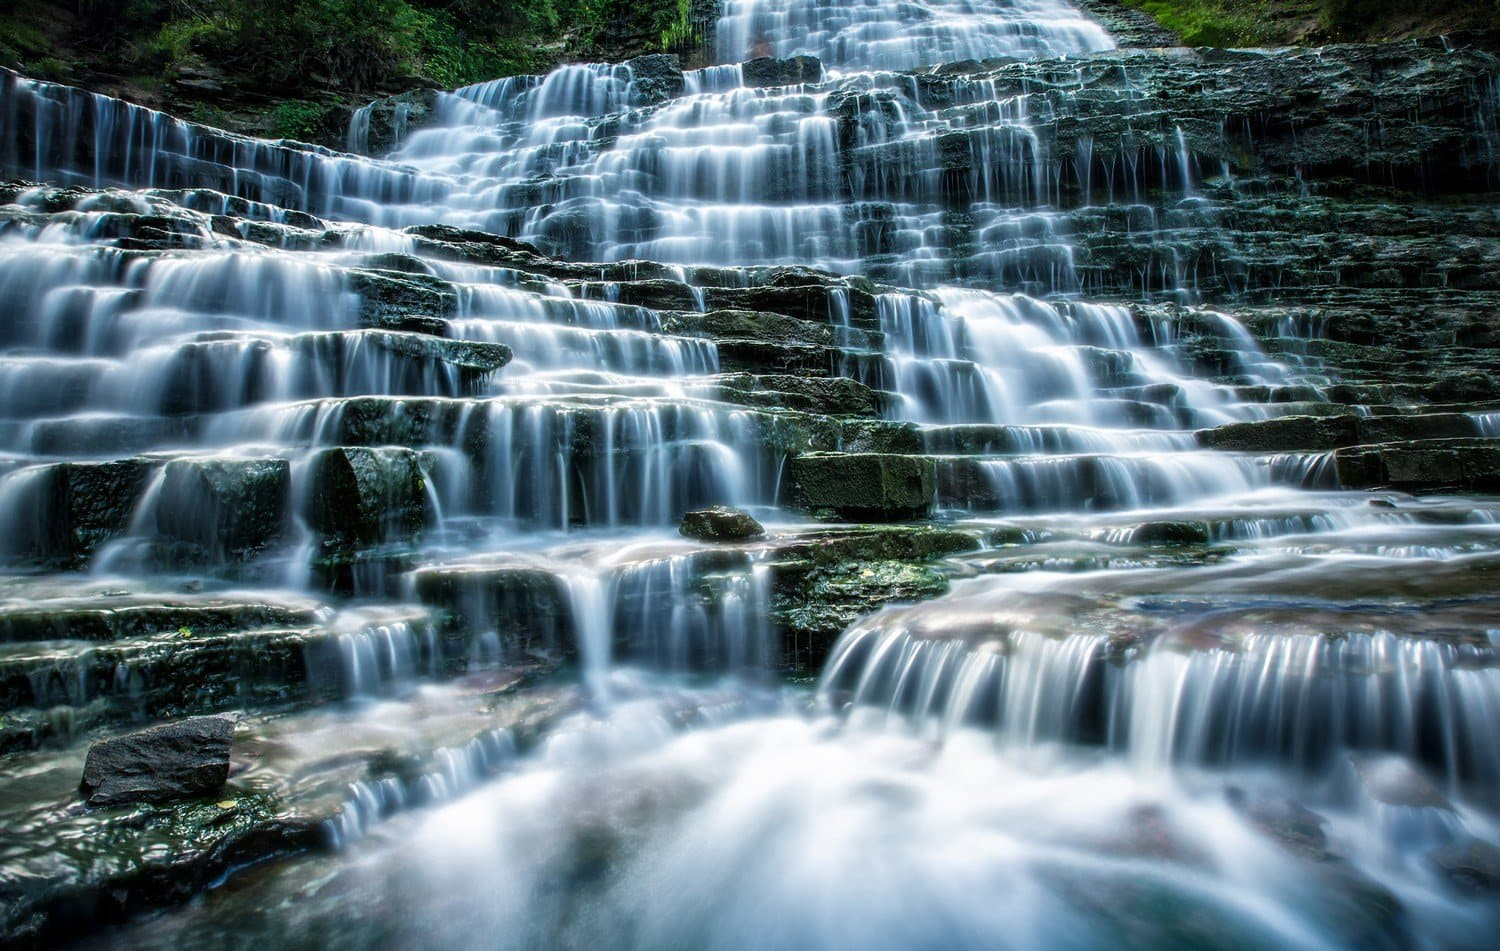 Free-Lightroom-Preset-Waterfall-Free-Presetpro.com